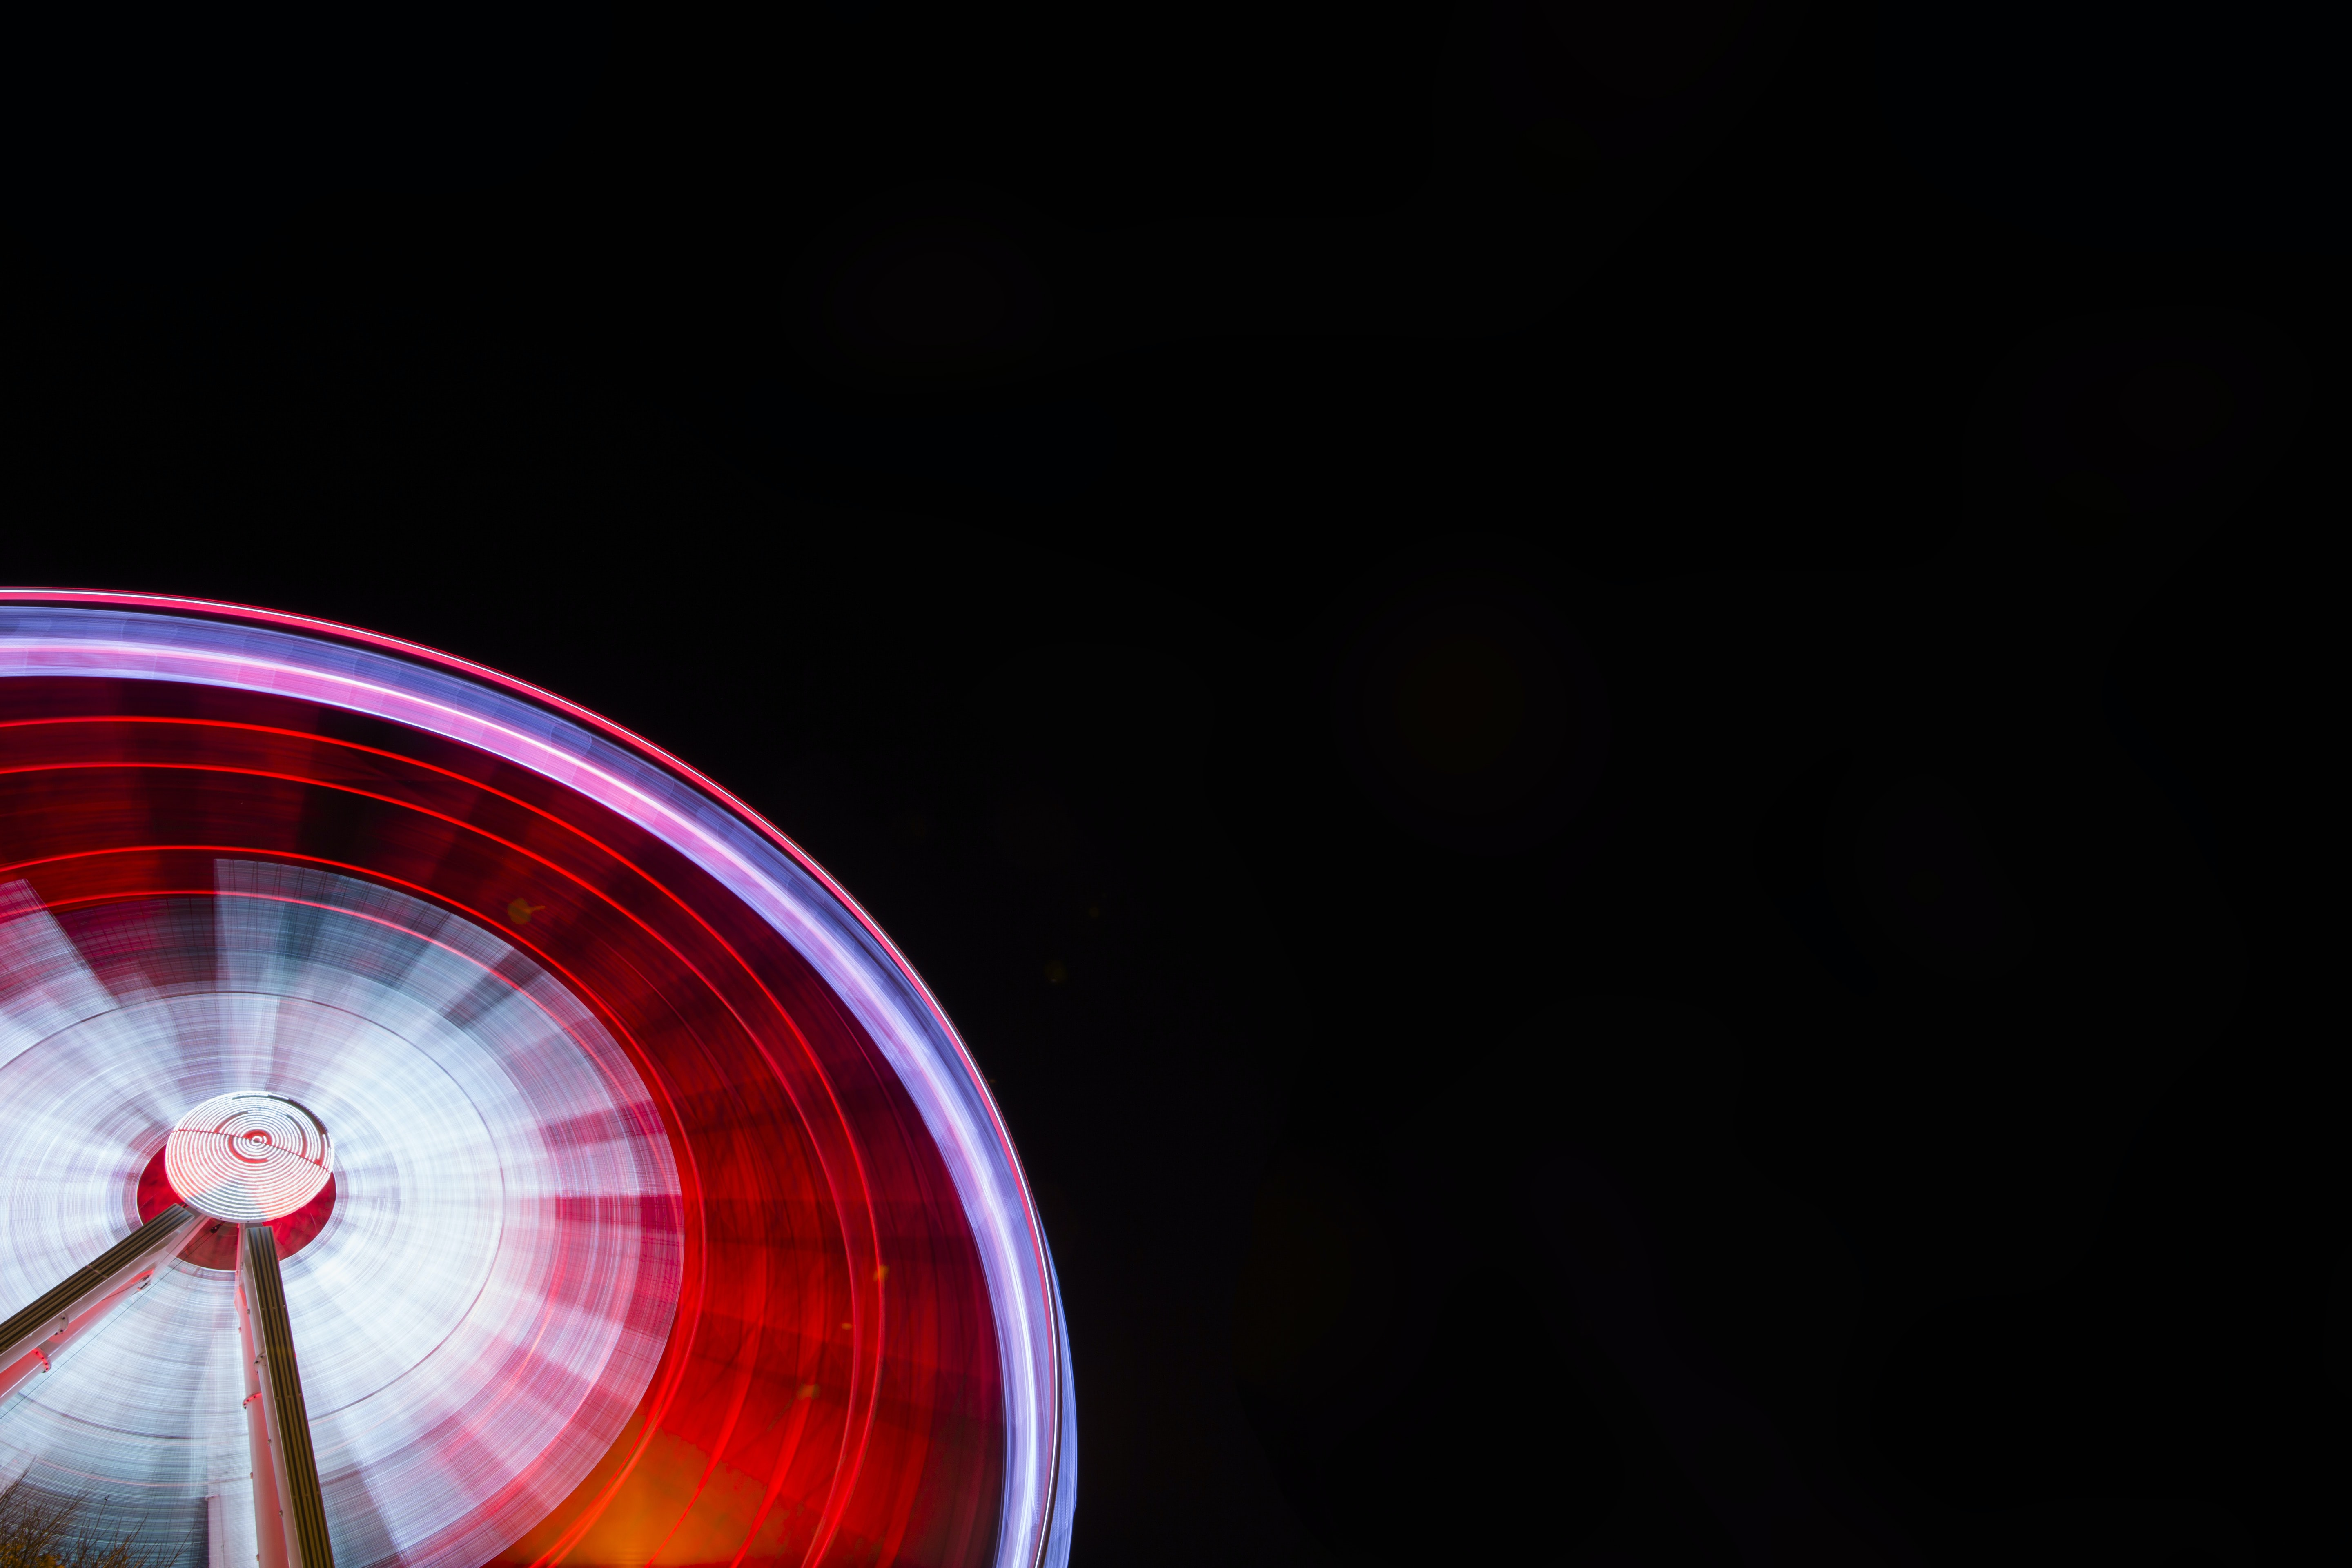 A partial image of a big red illuminated ferris wheel spinning at a fair